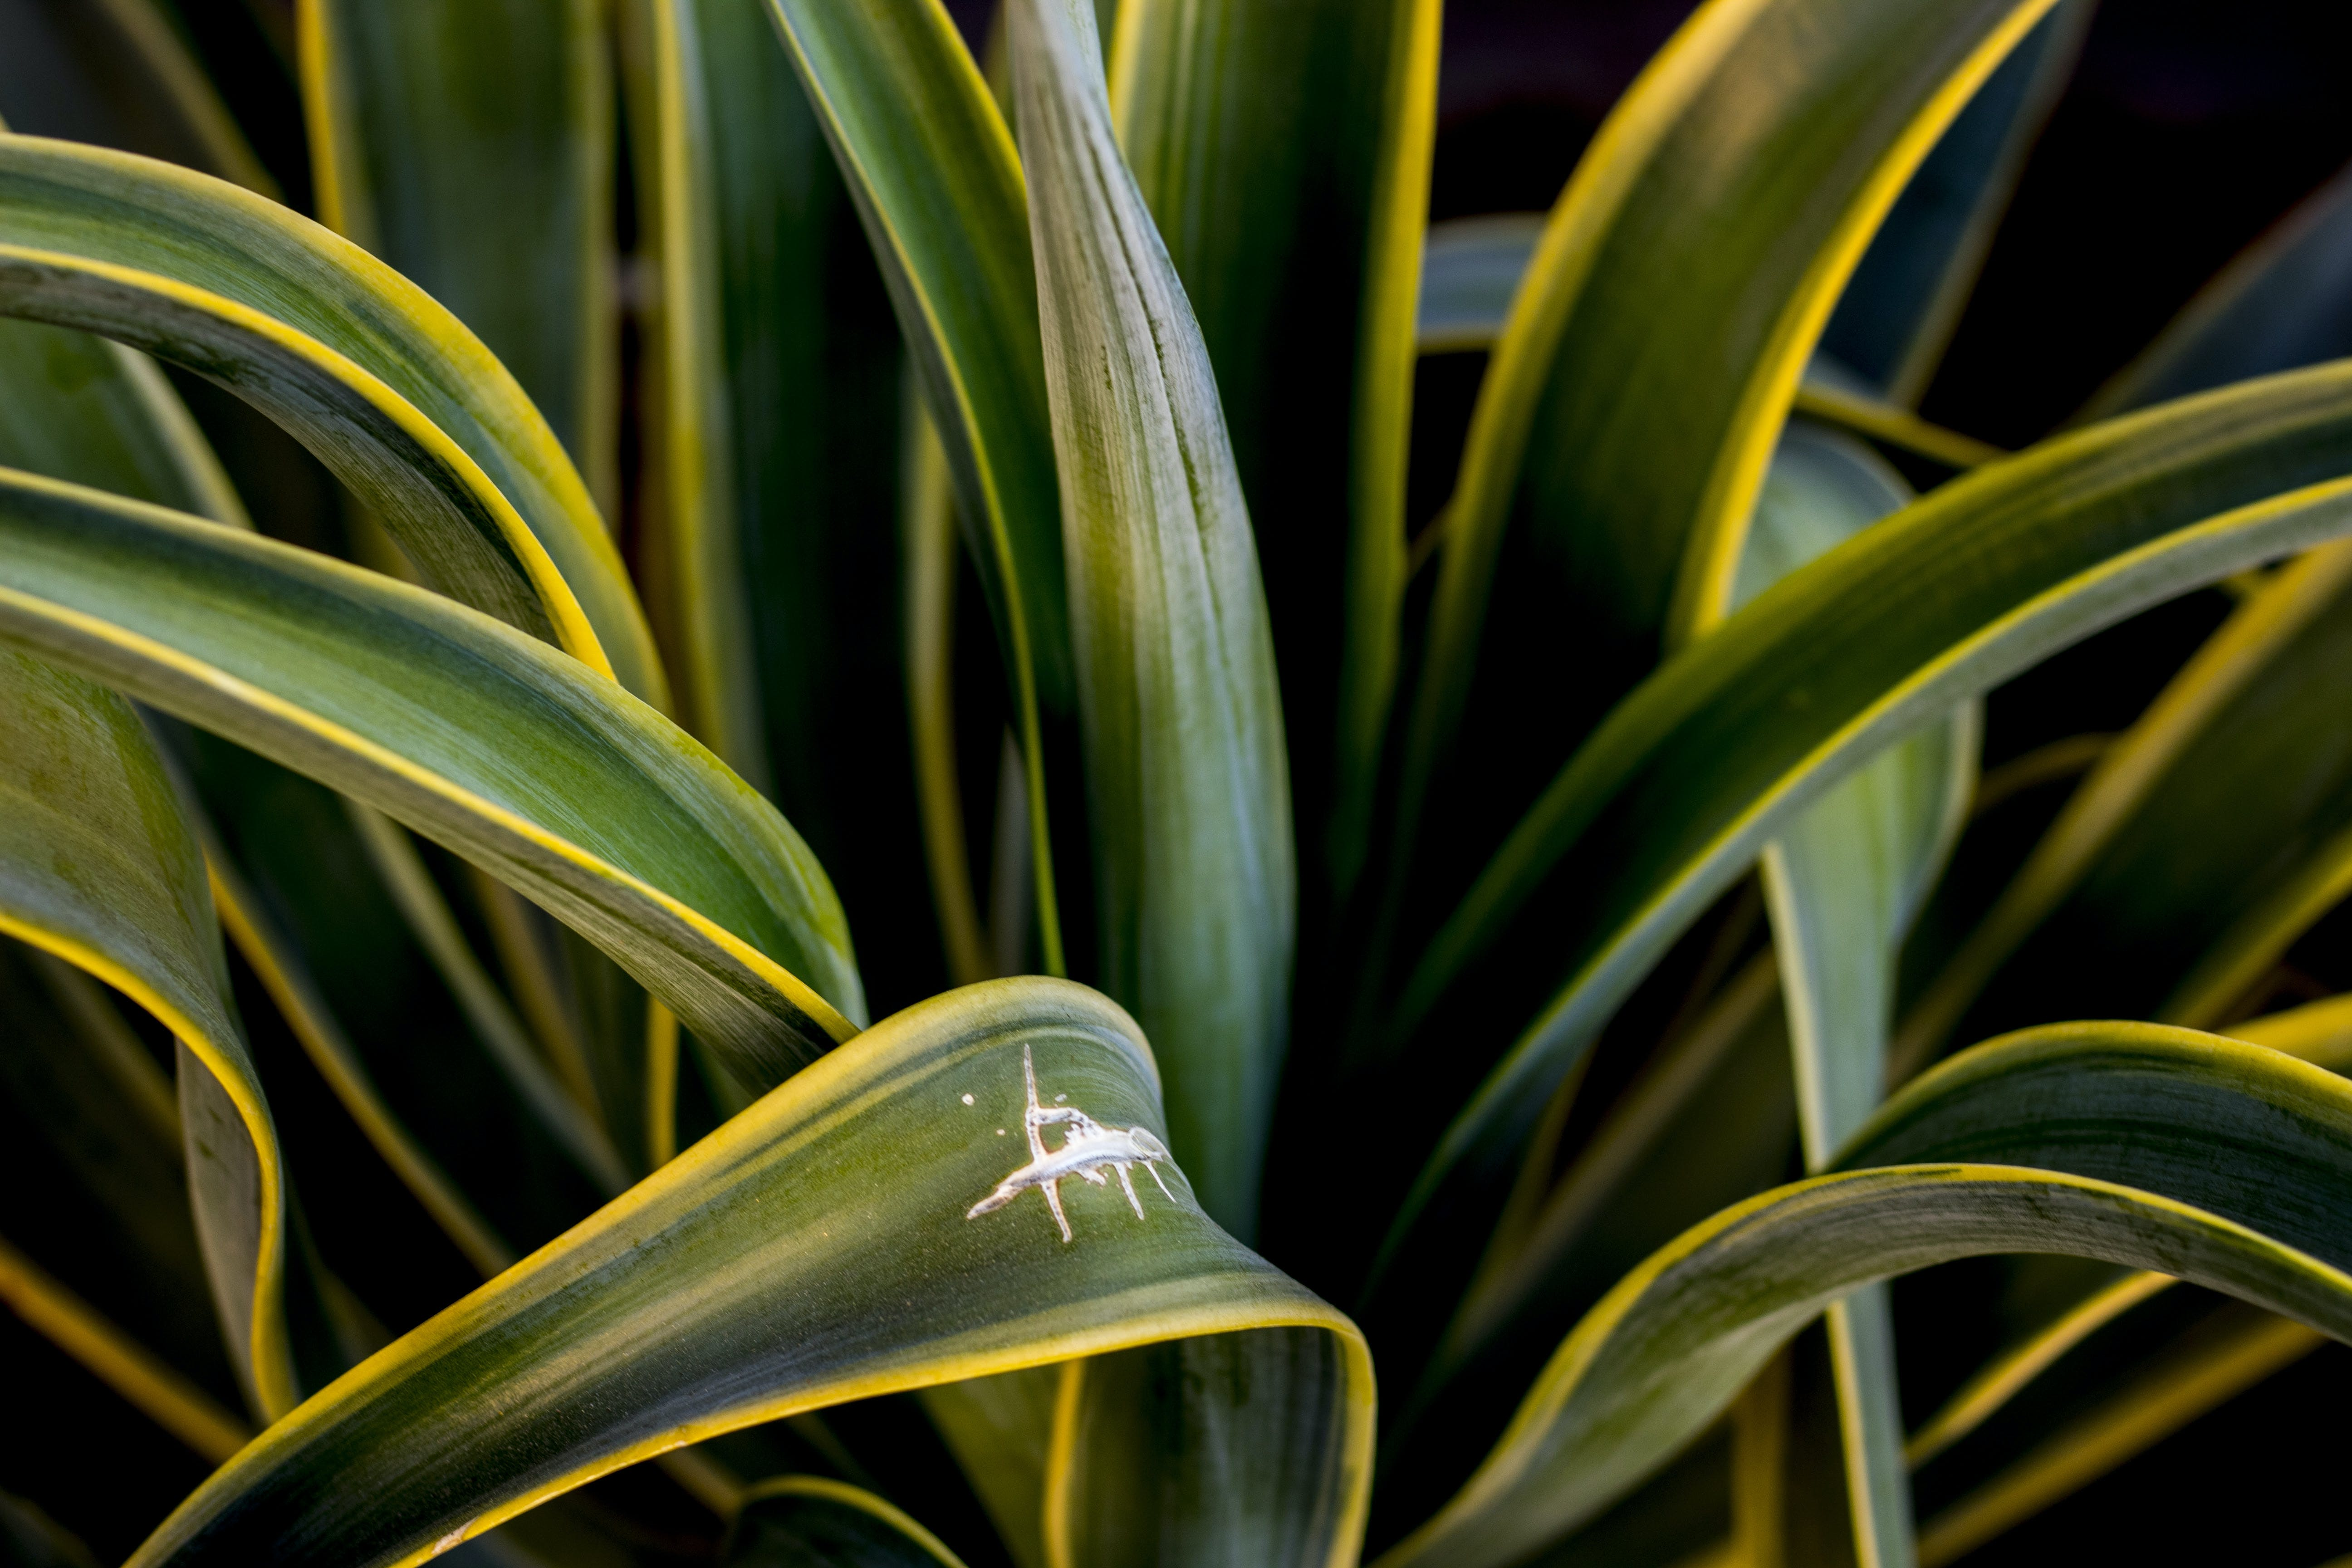 Close-Up Photography of Agave Plant